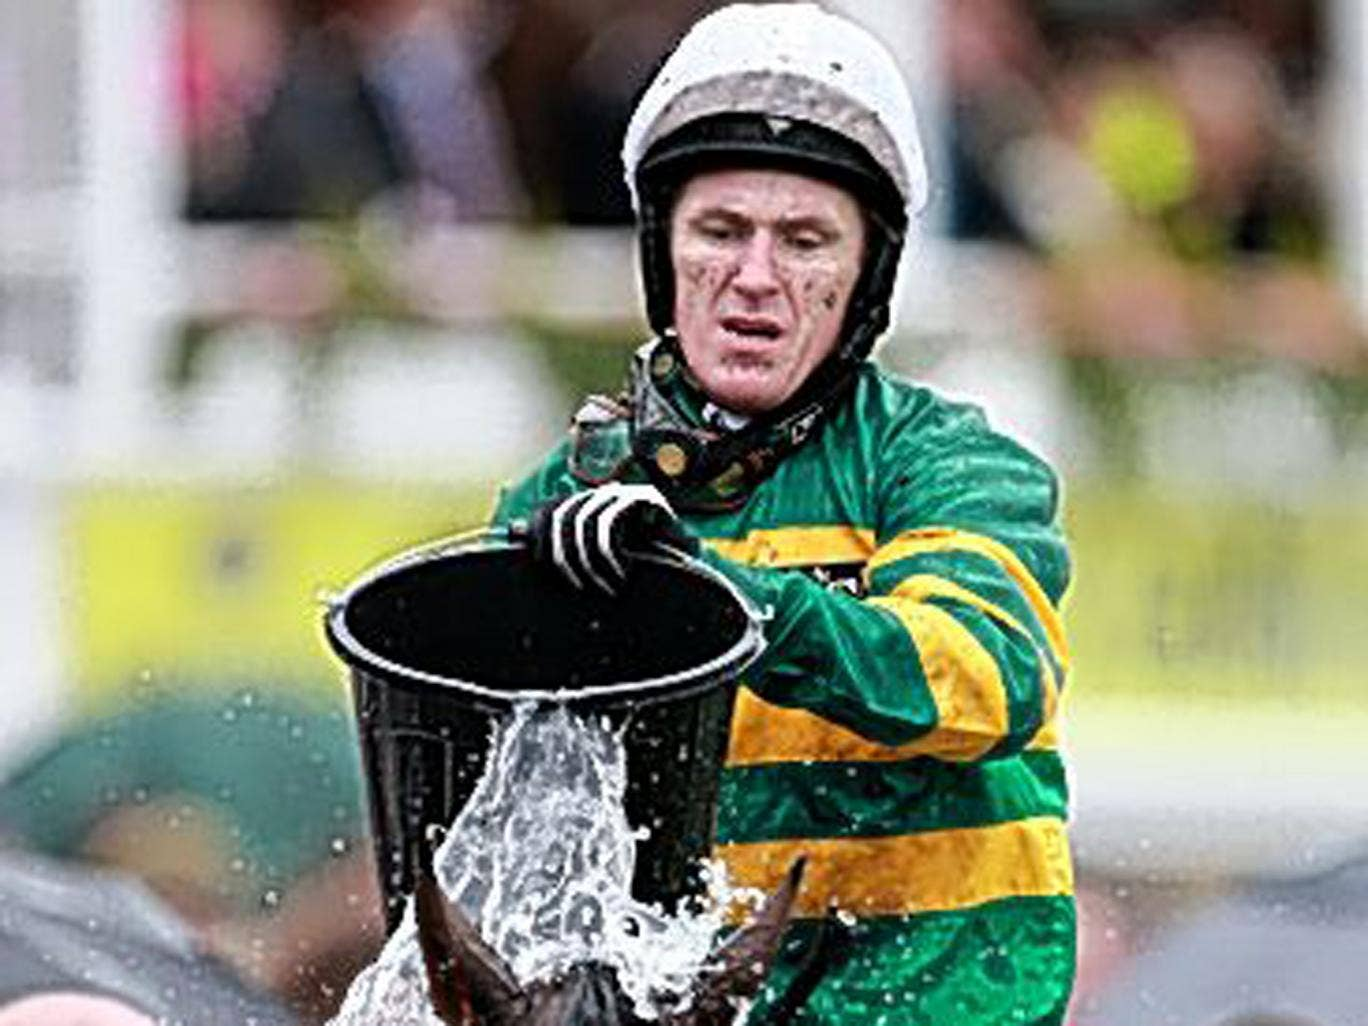 Making a splash: Tony McCoy cools off Double Seven after the race